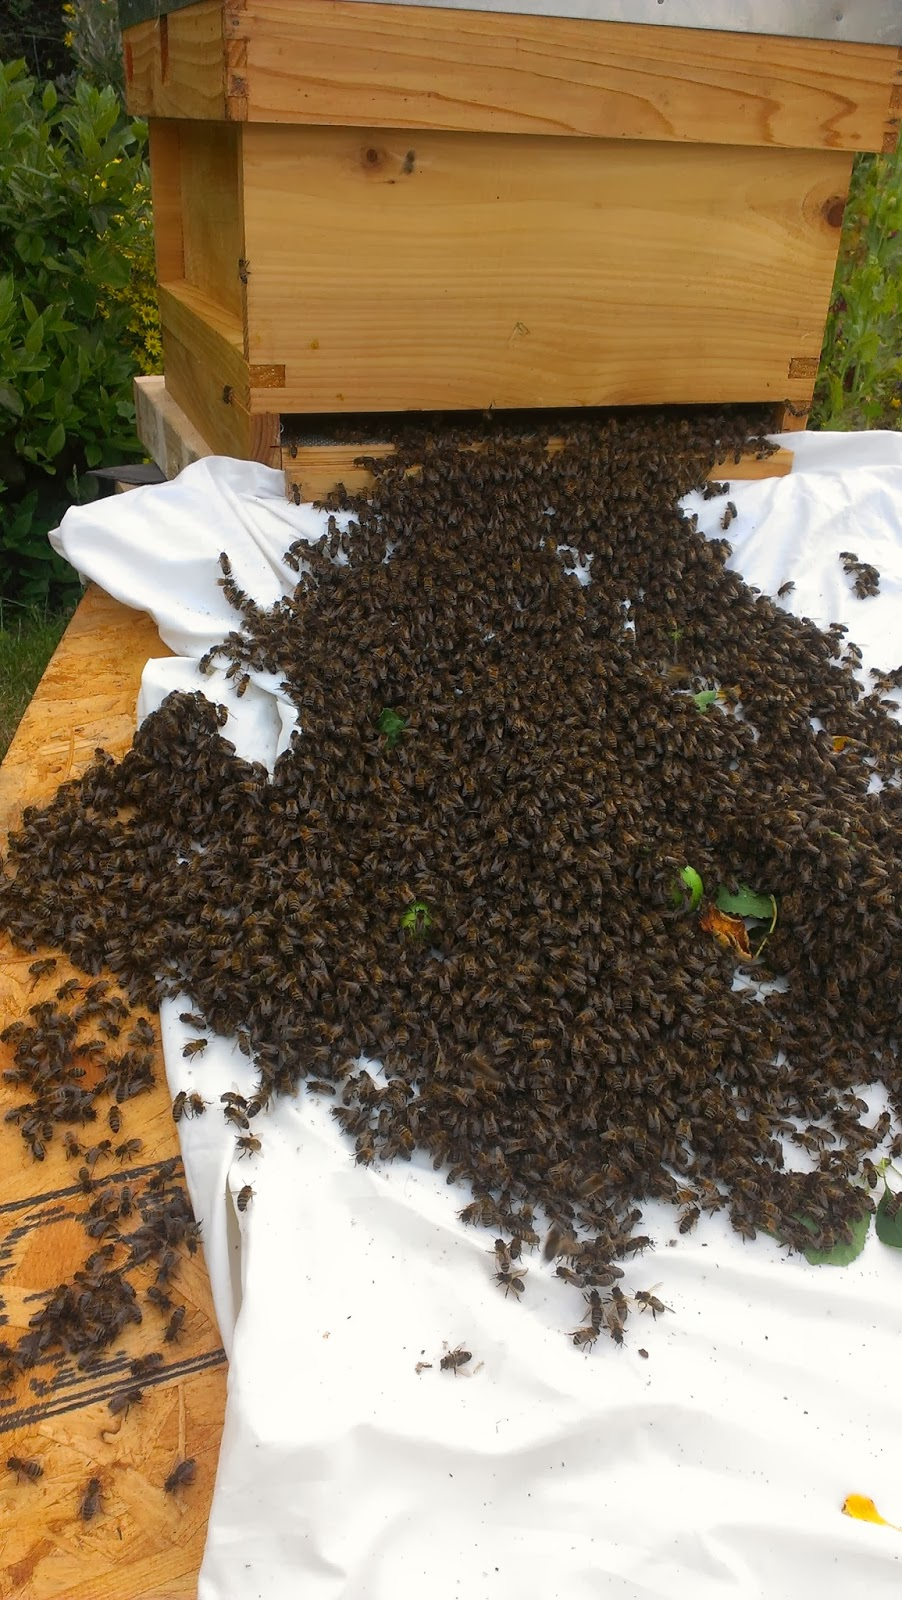 How can I catch a bee swarm?